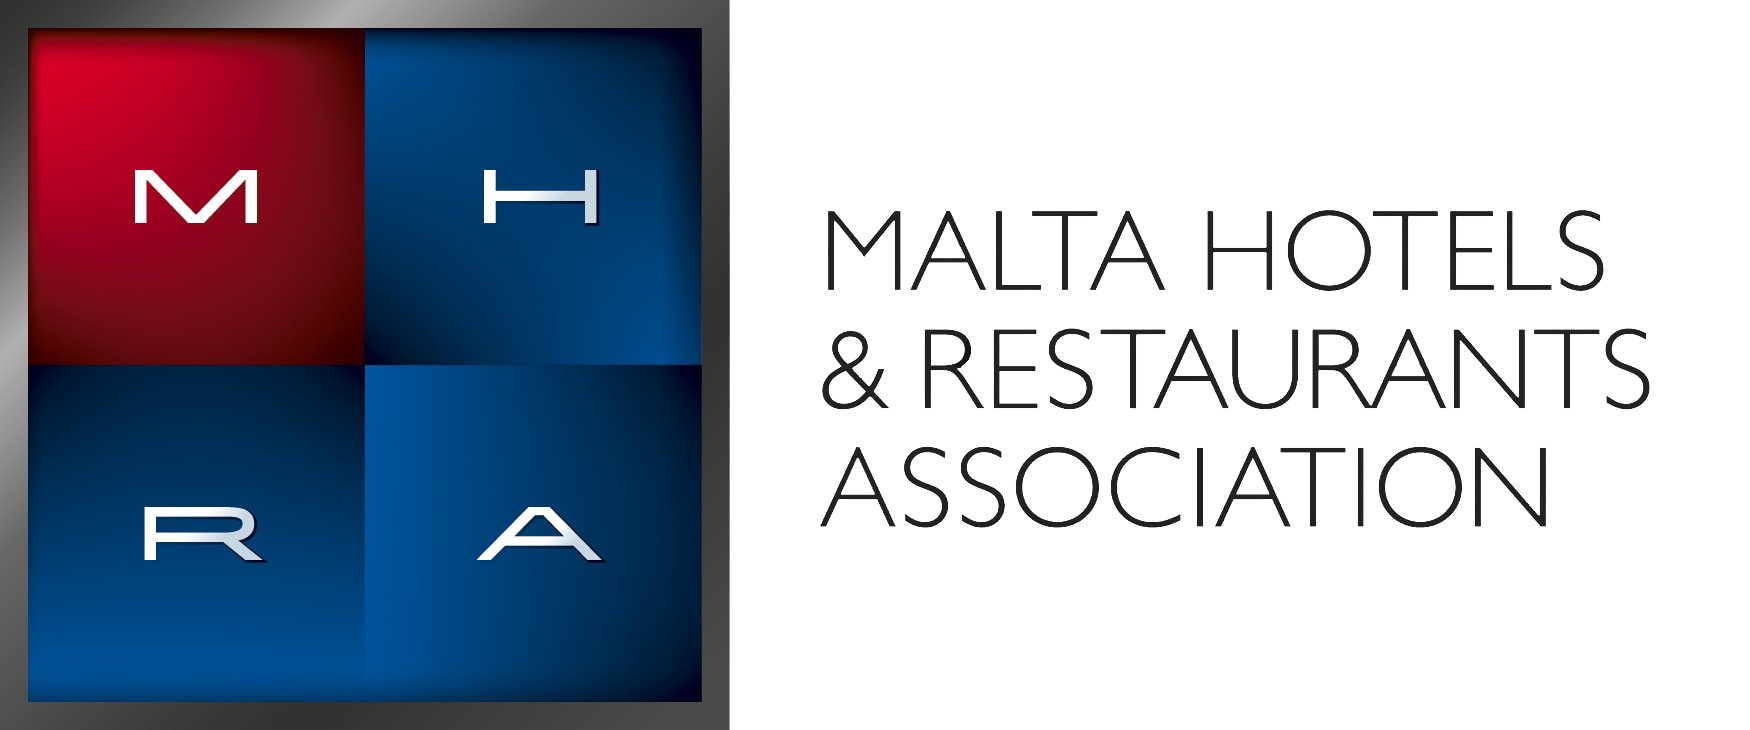 Malta Hotels and Restaurants Association